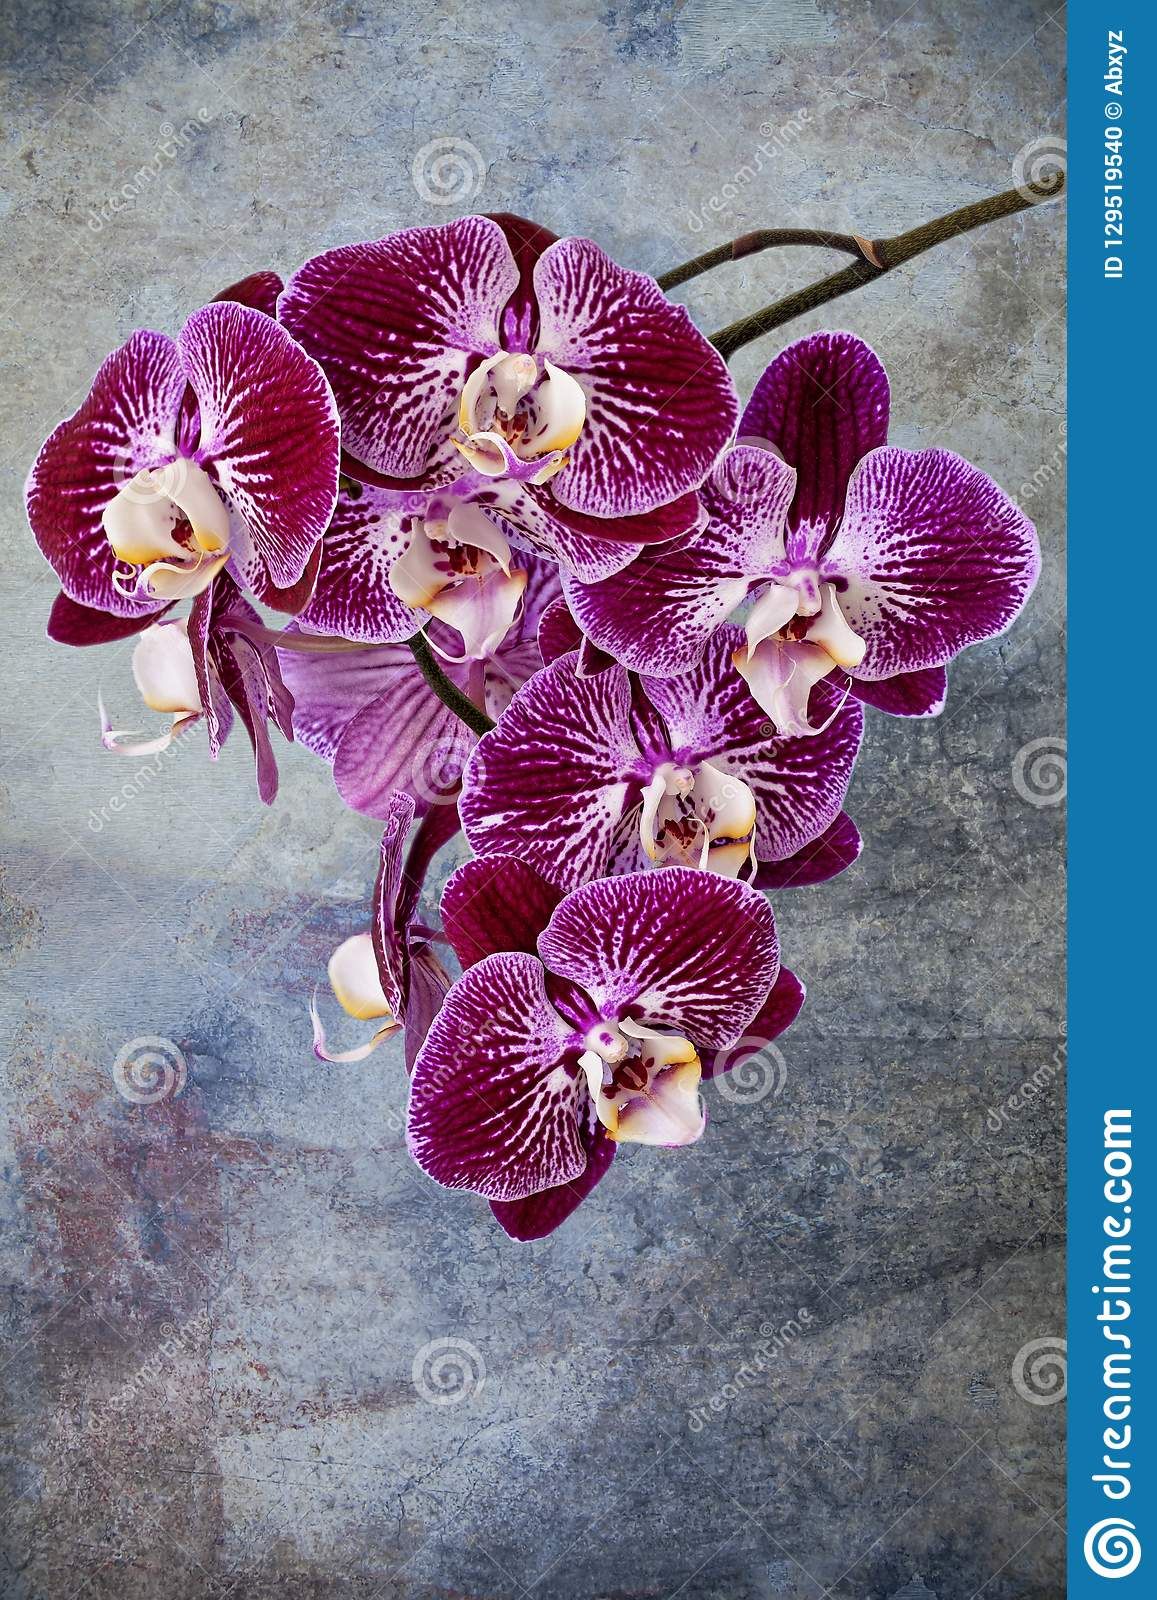 Violettes Orchideendetail